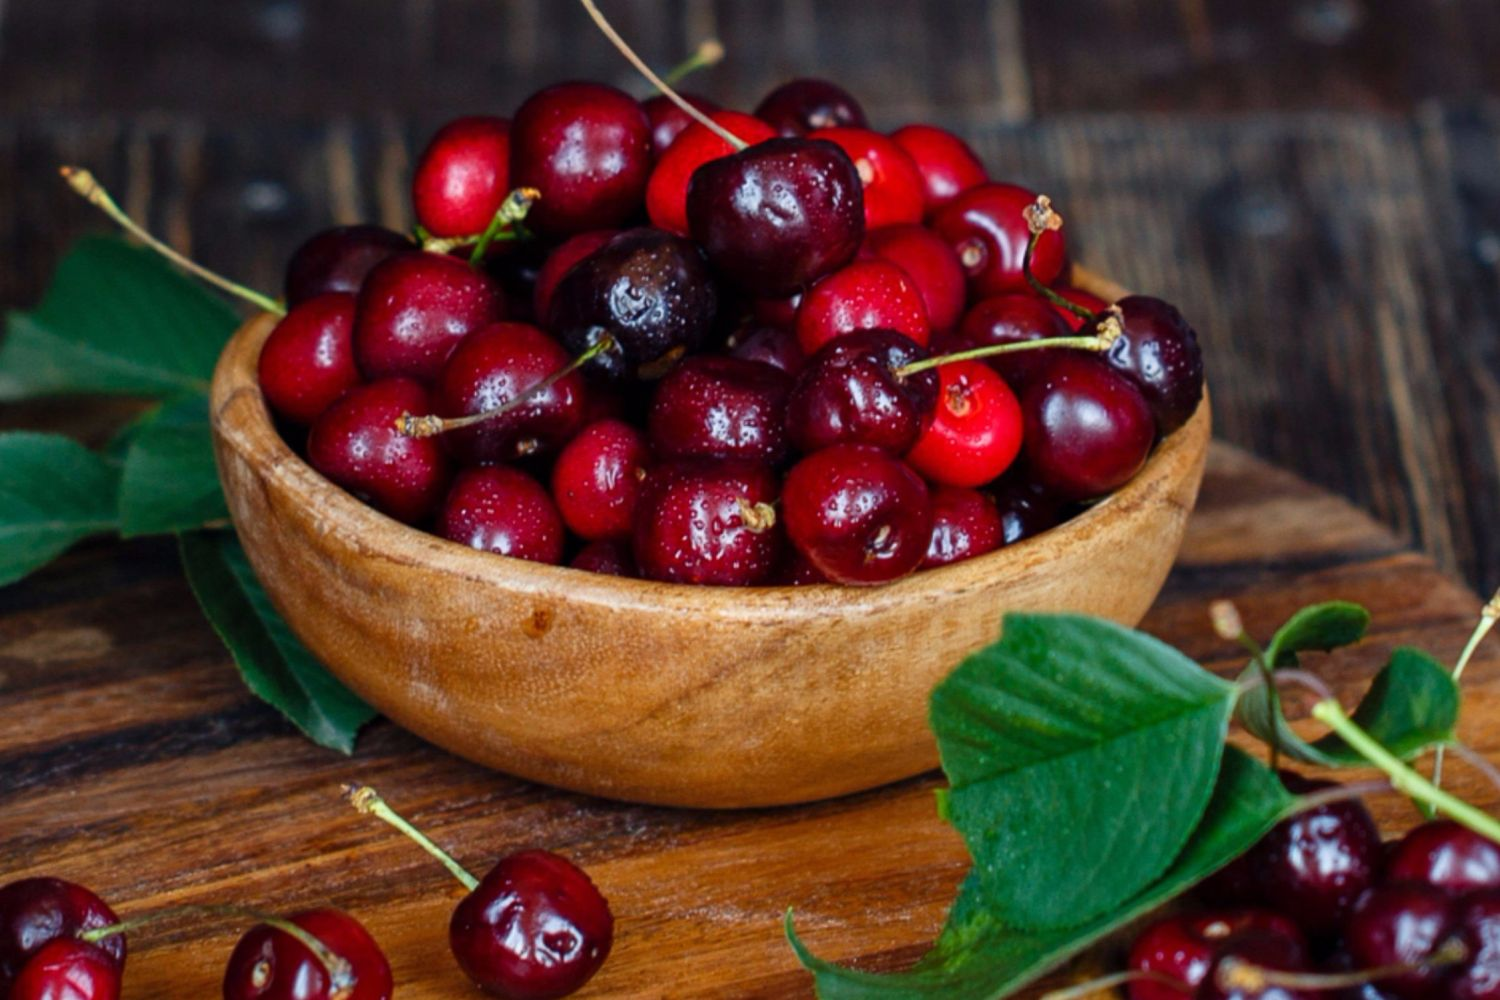 A bowl of juicy cherries in Young, Australia